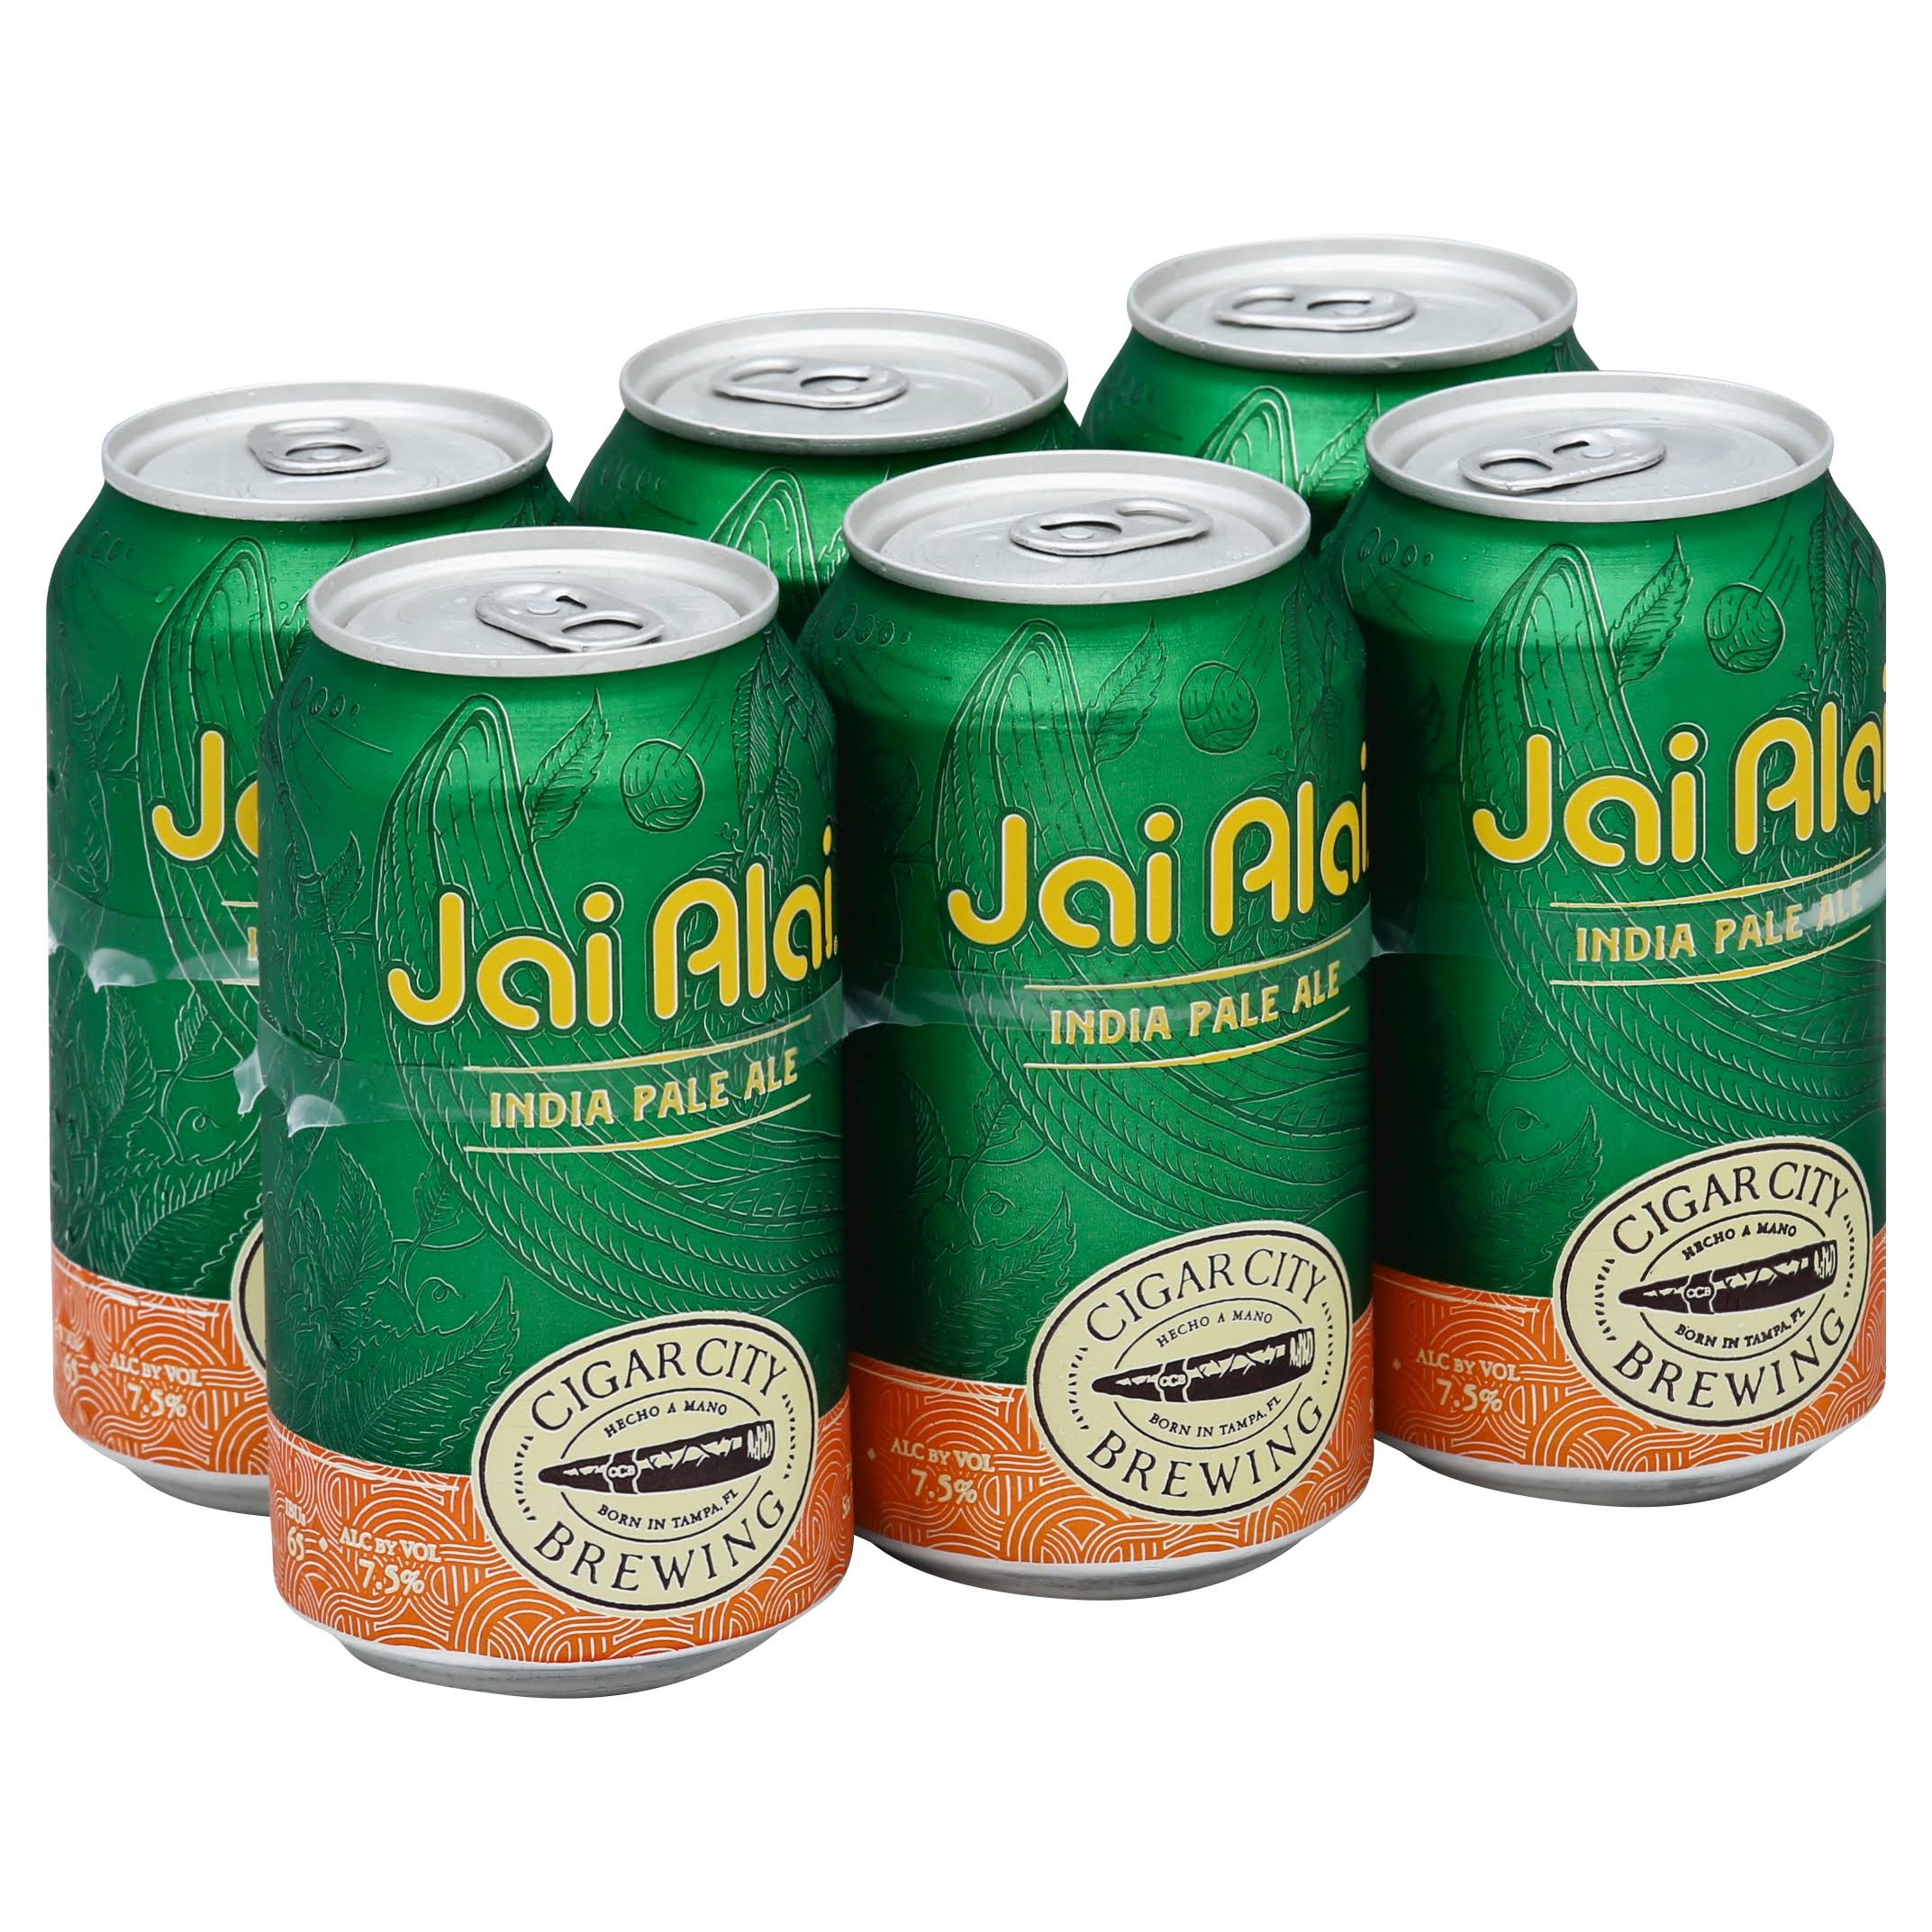 Cigar City Jai Alai IPA - 6 pack, 12 fl oz cans